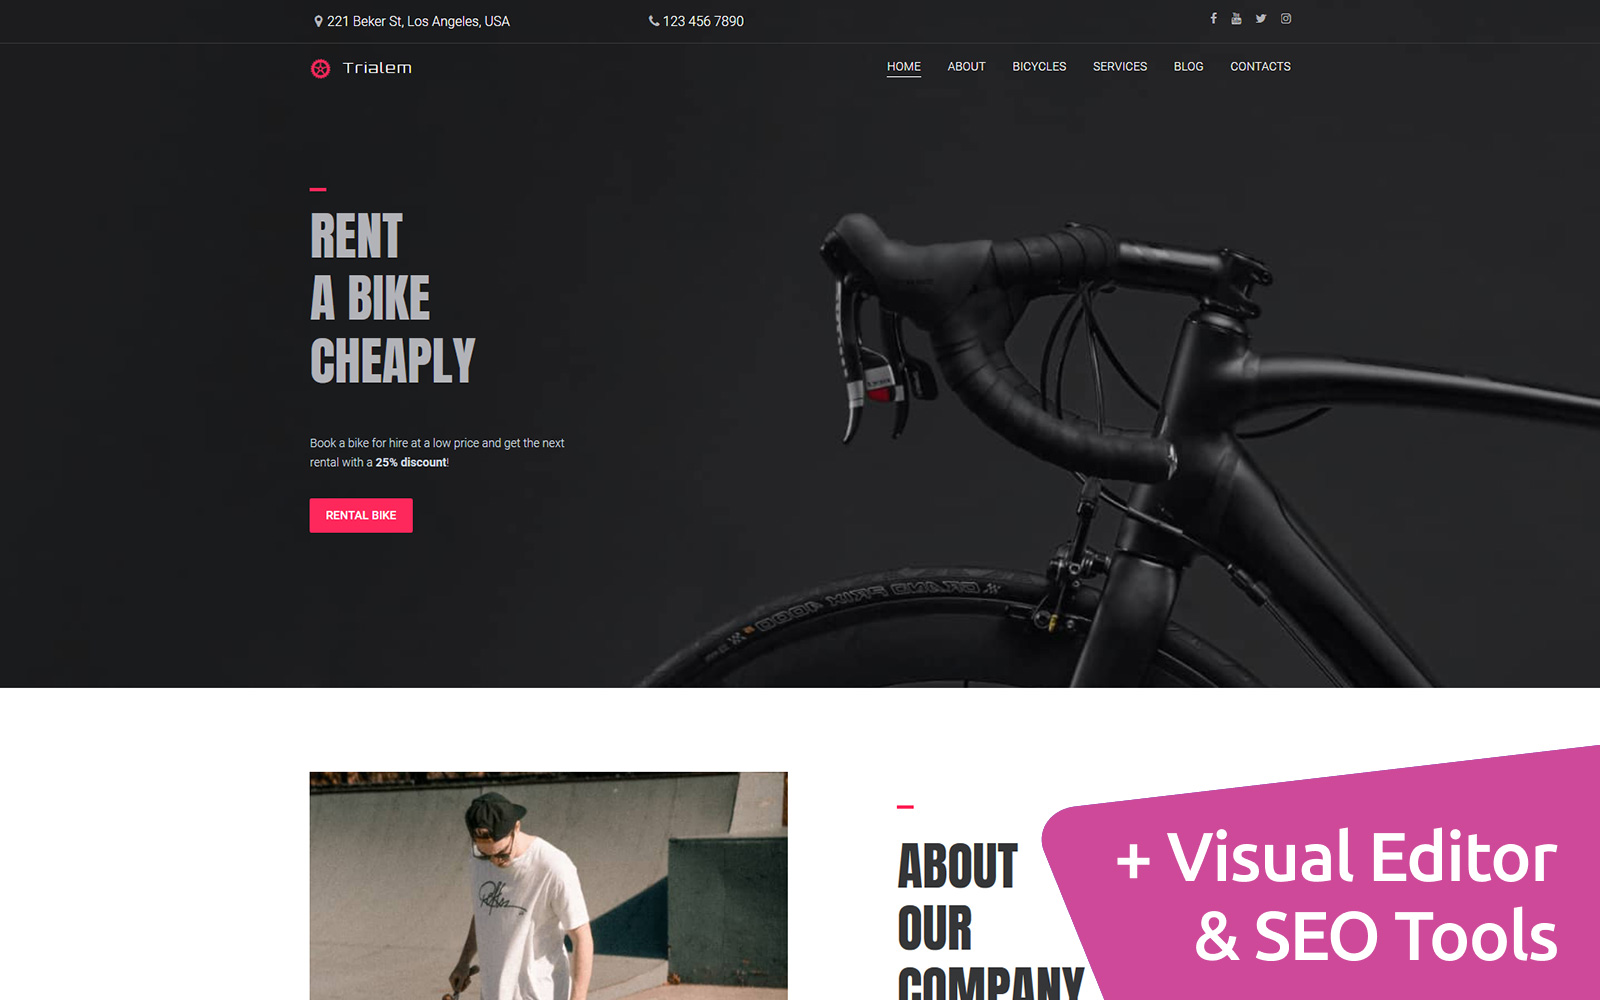 Trialem - Bike Rental Moto CMS 3 Template